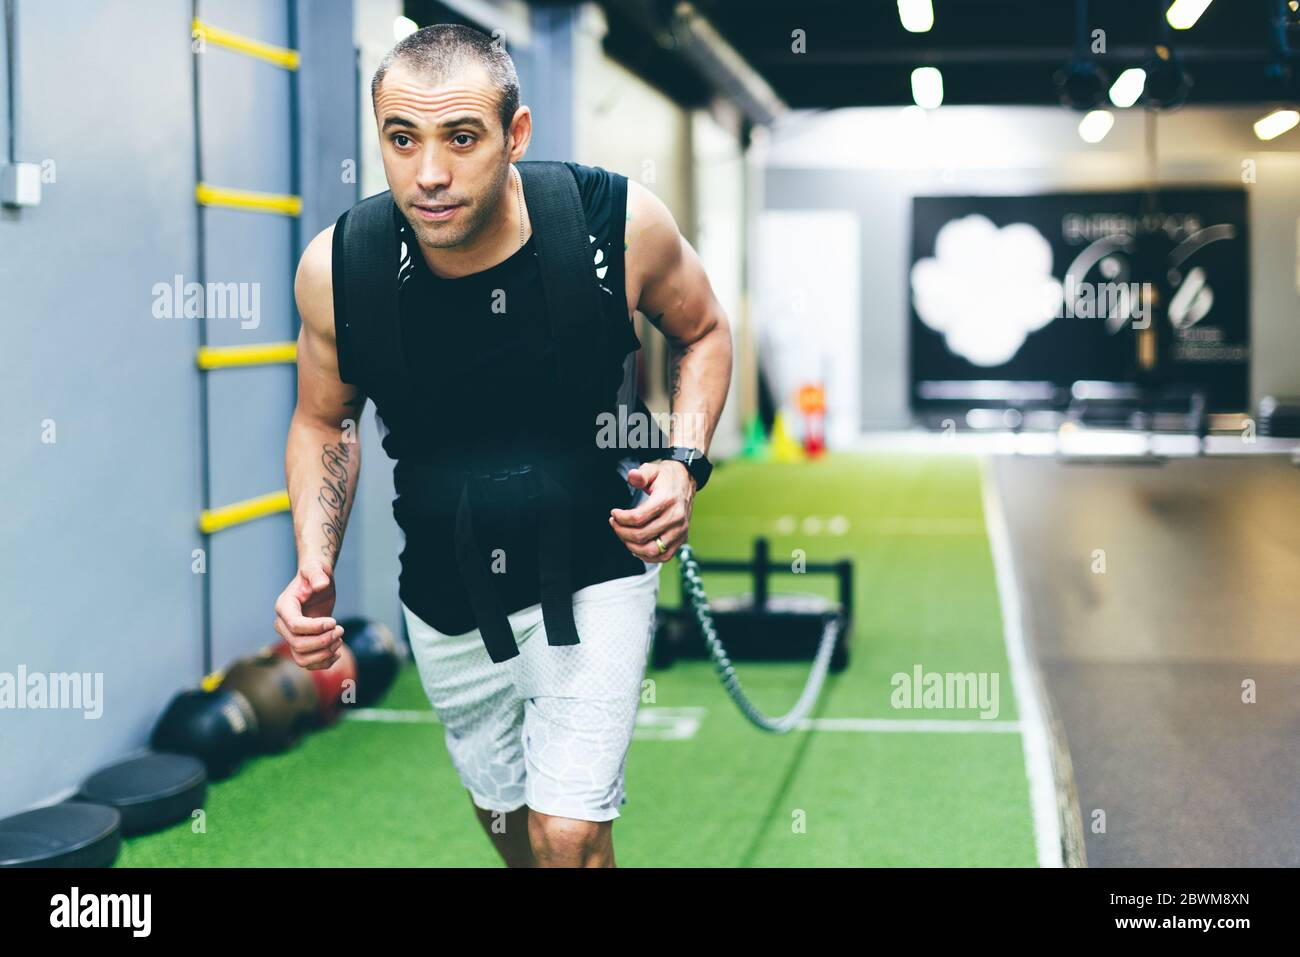 Latin boy doing physical exercise in gym dragging a sled with weight. Training concept Stock Photo